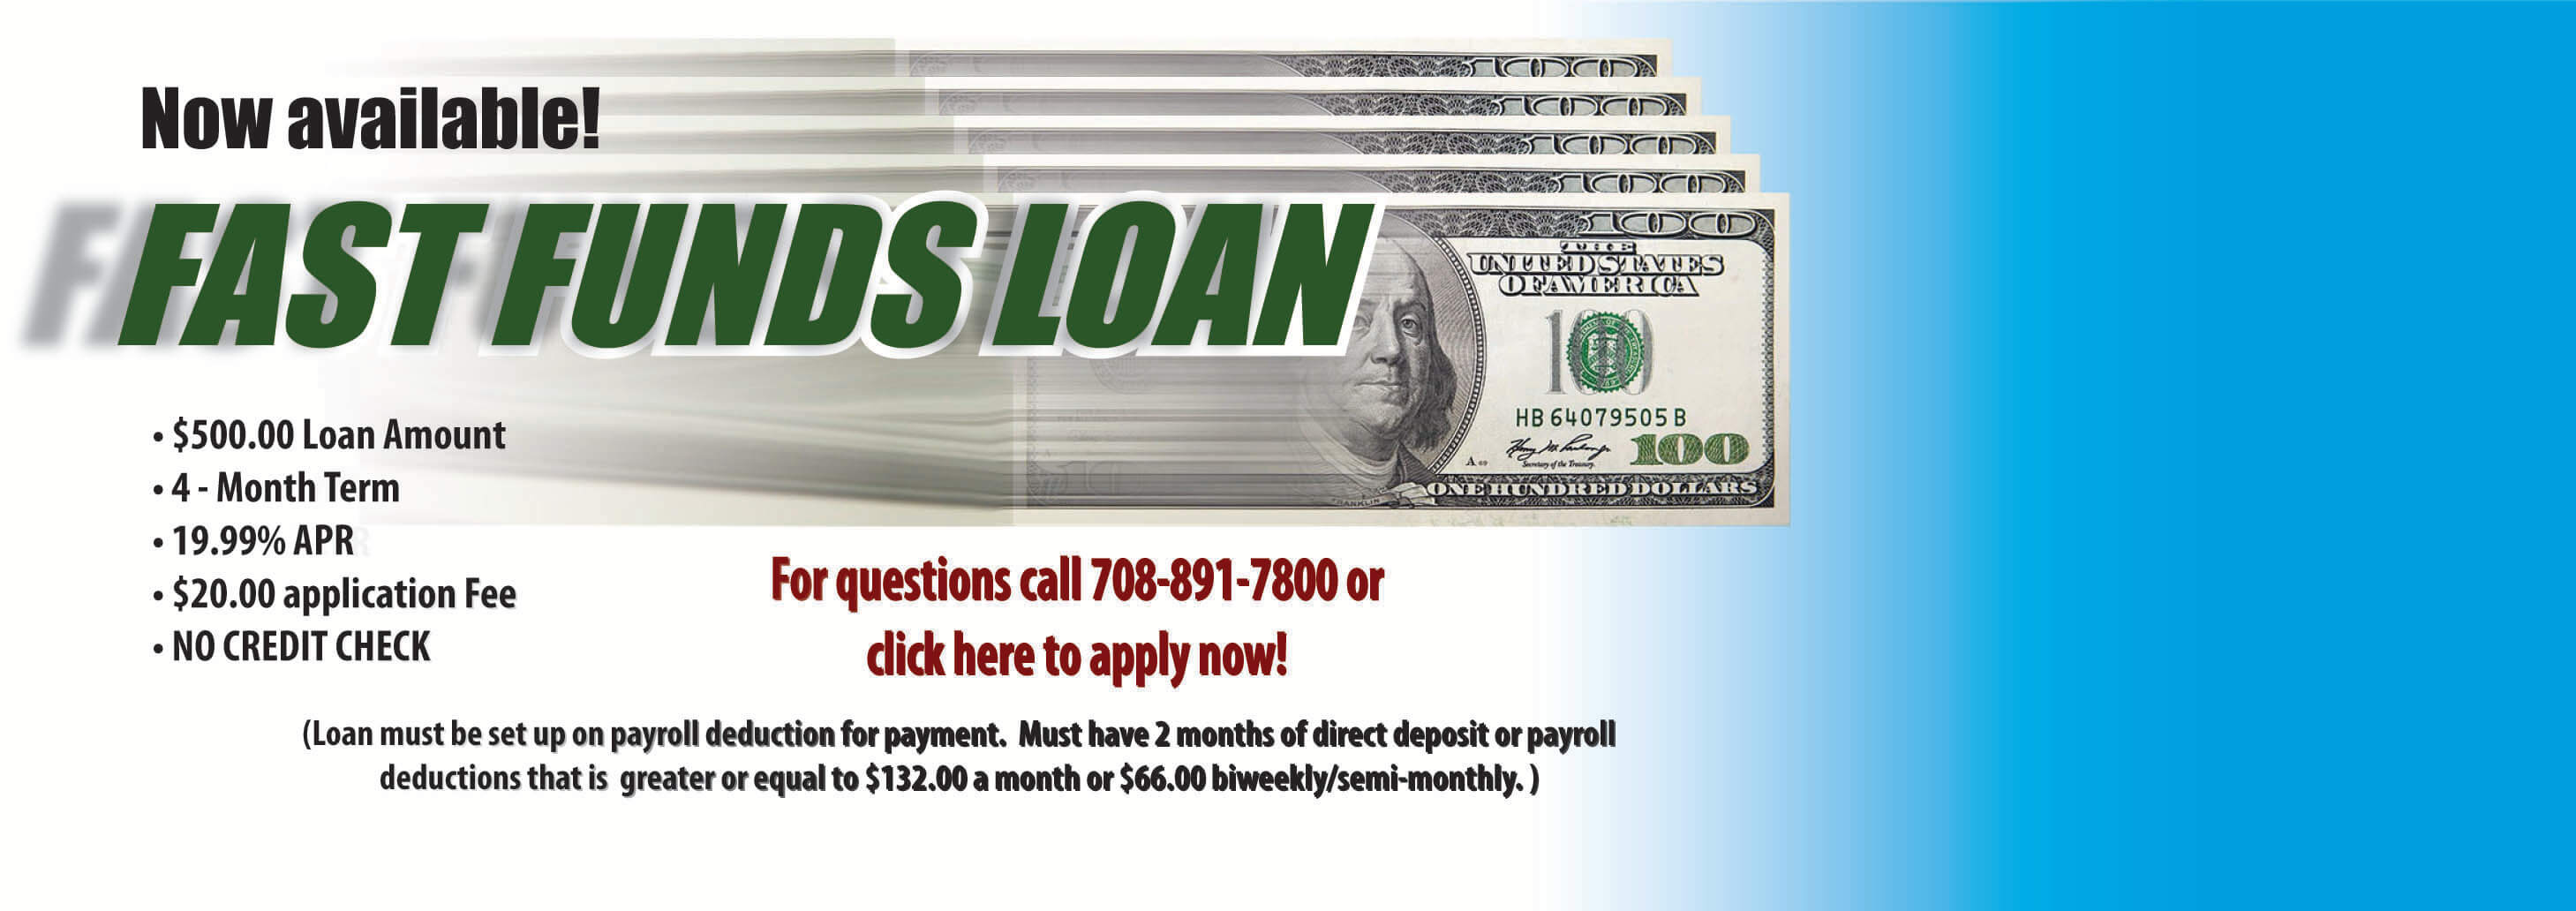 Fast funds loan, now available: $500.00 loan amount, 4 month term, 19.99% APR , $20.00 app fee, no credit check